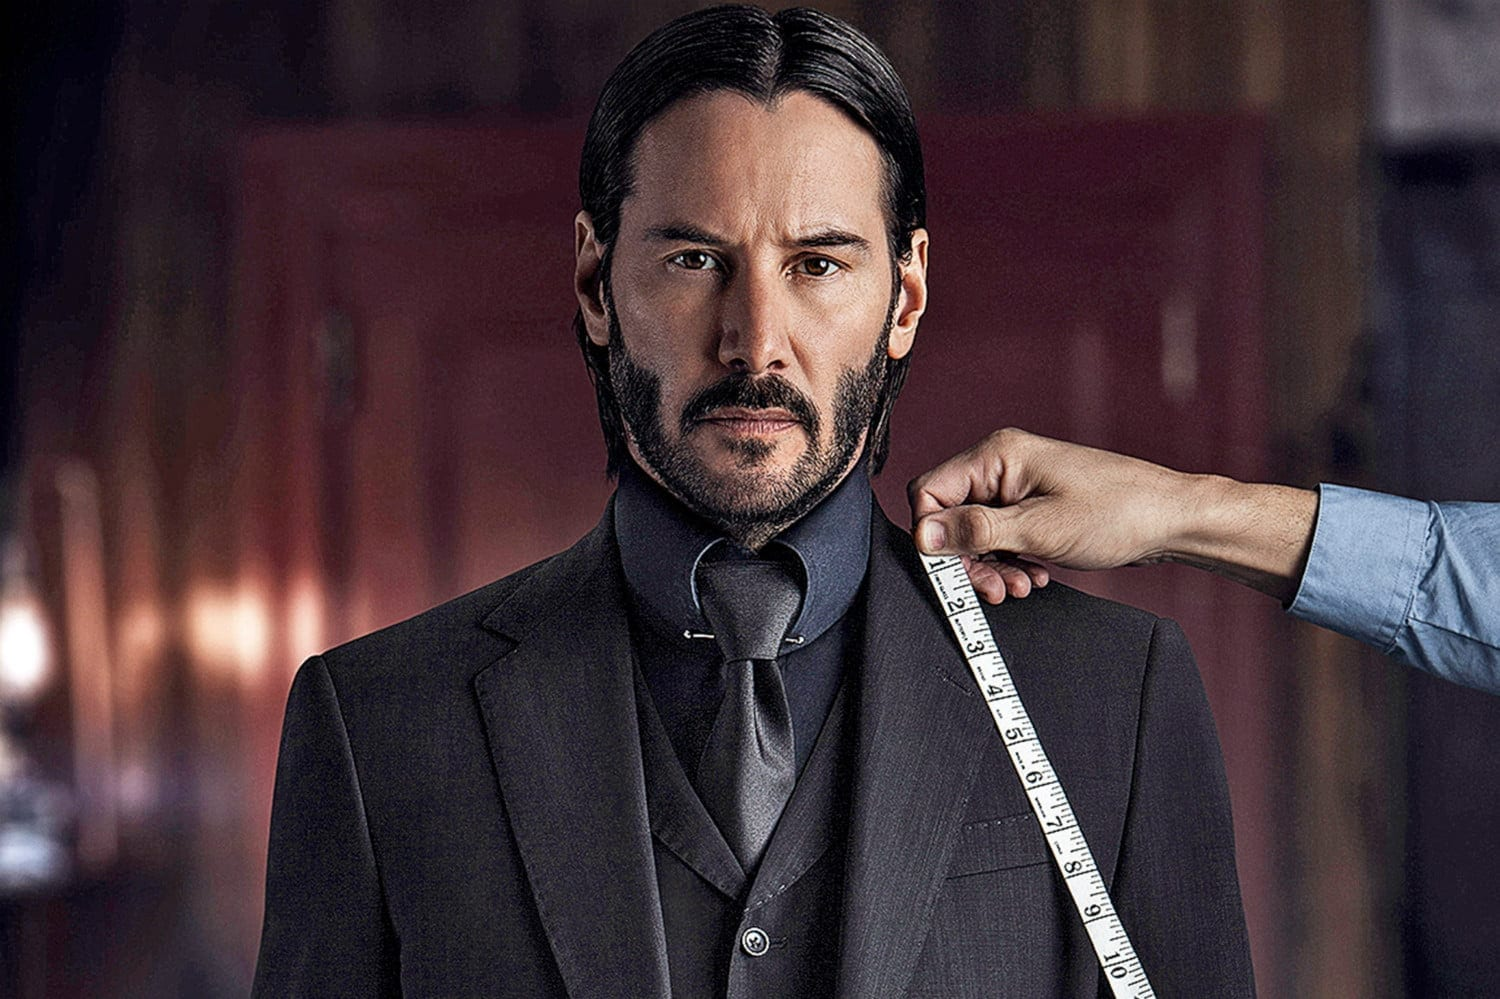 The Trailer For John Wick 3 Is (Finally) Here